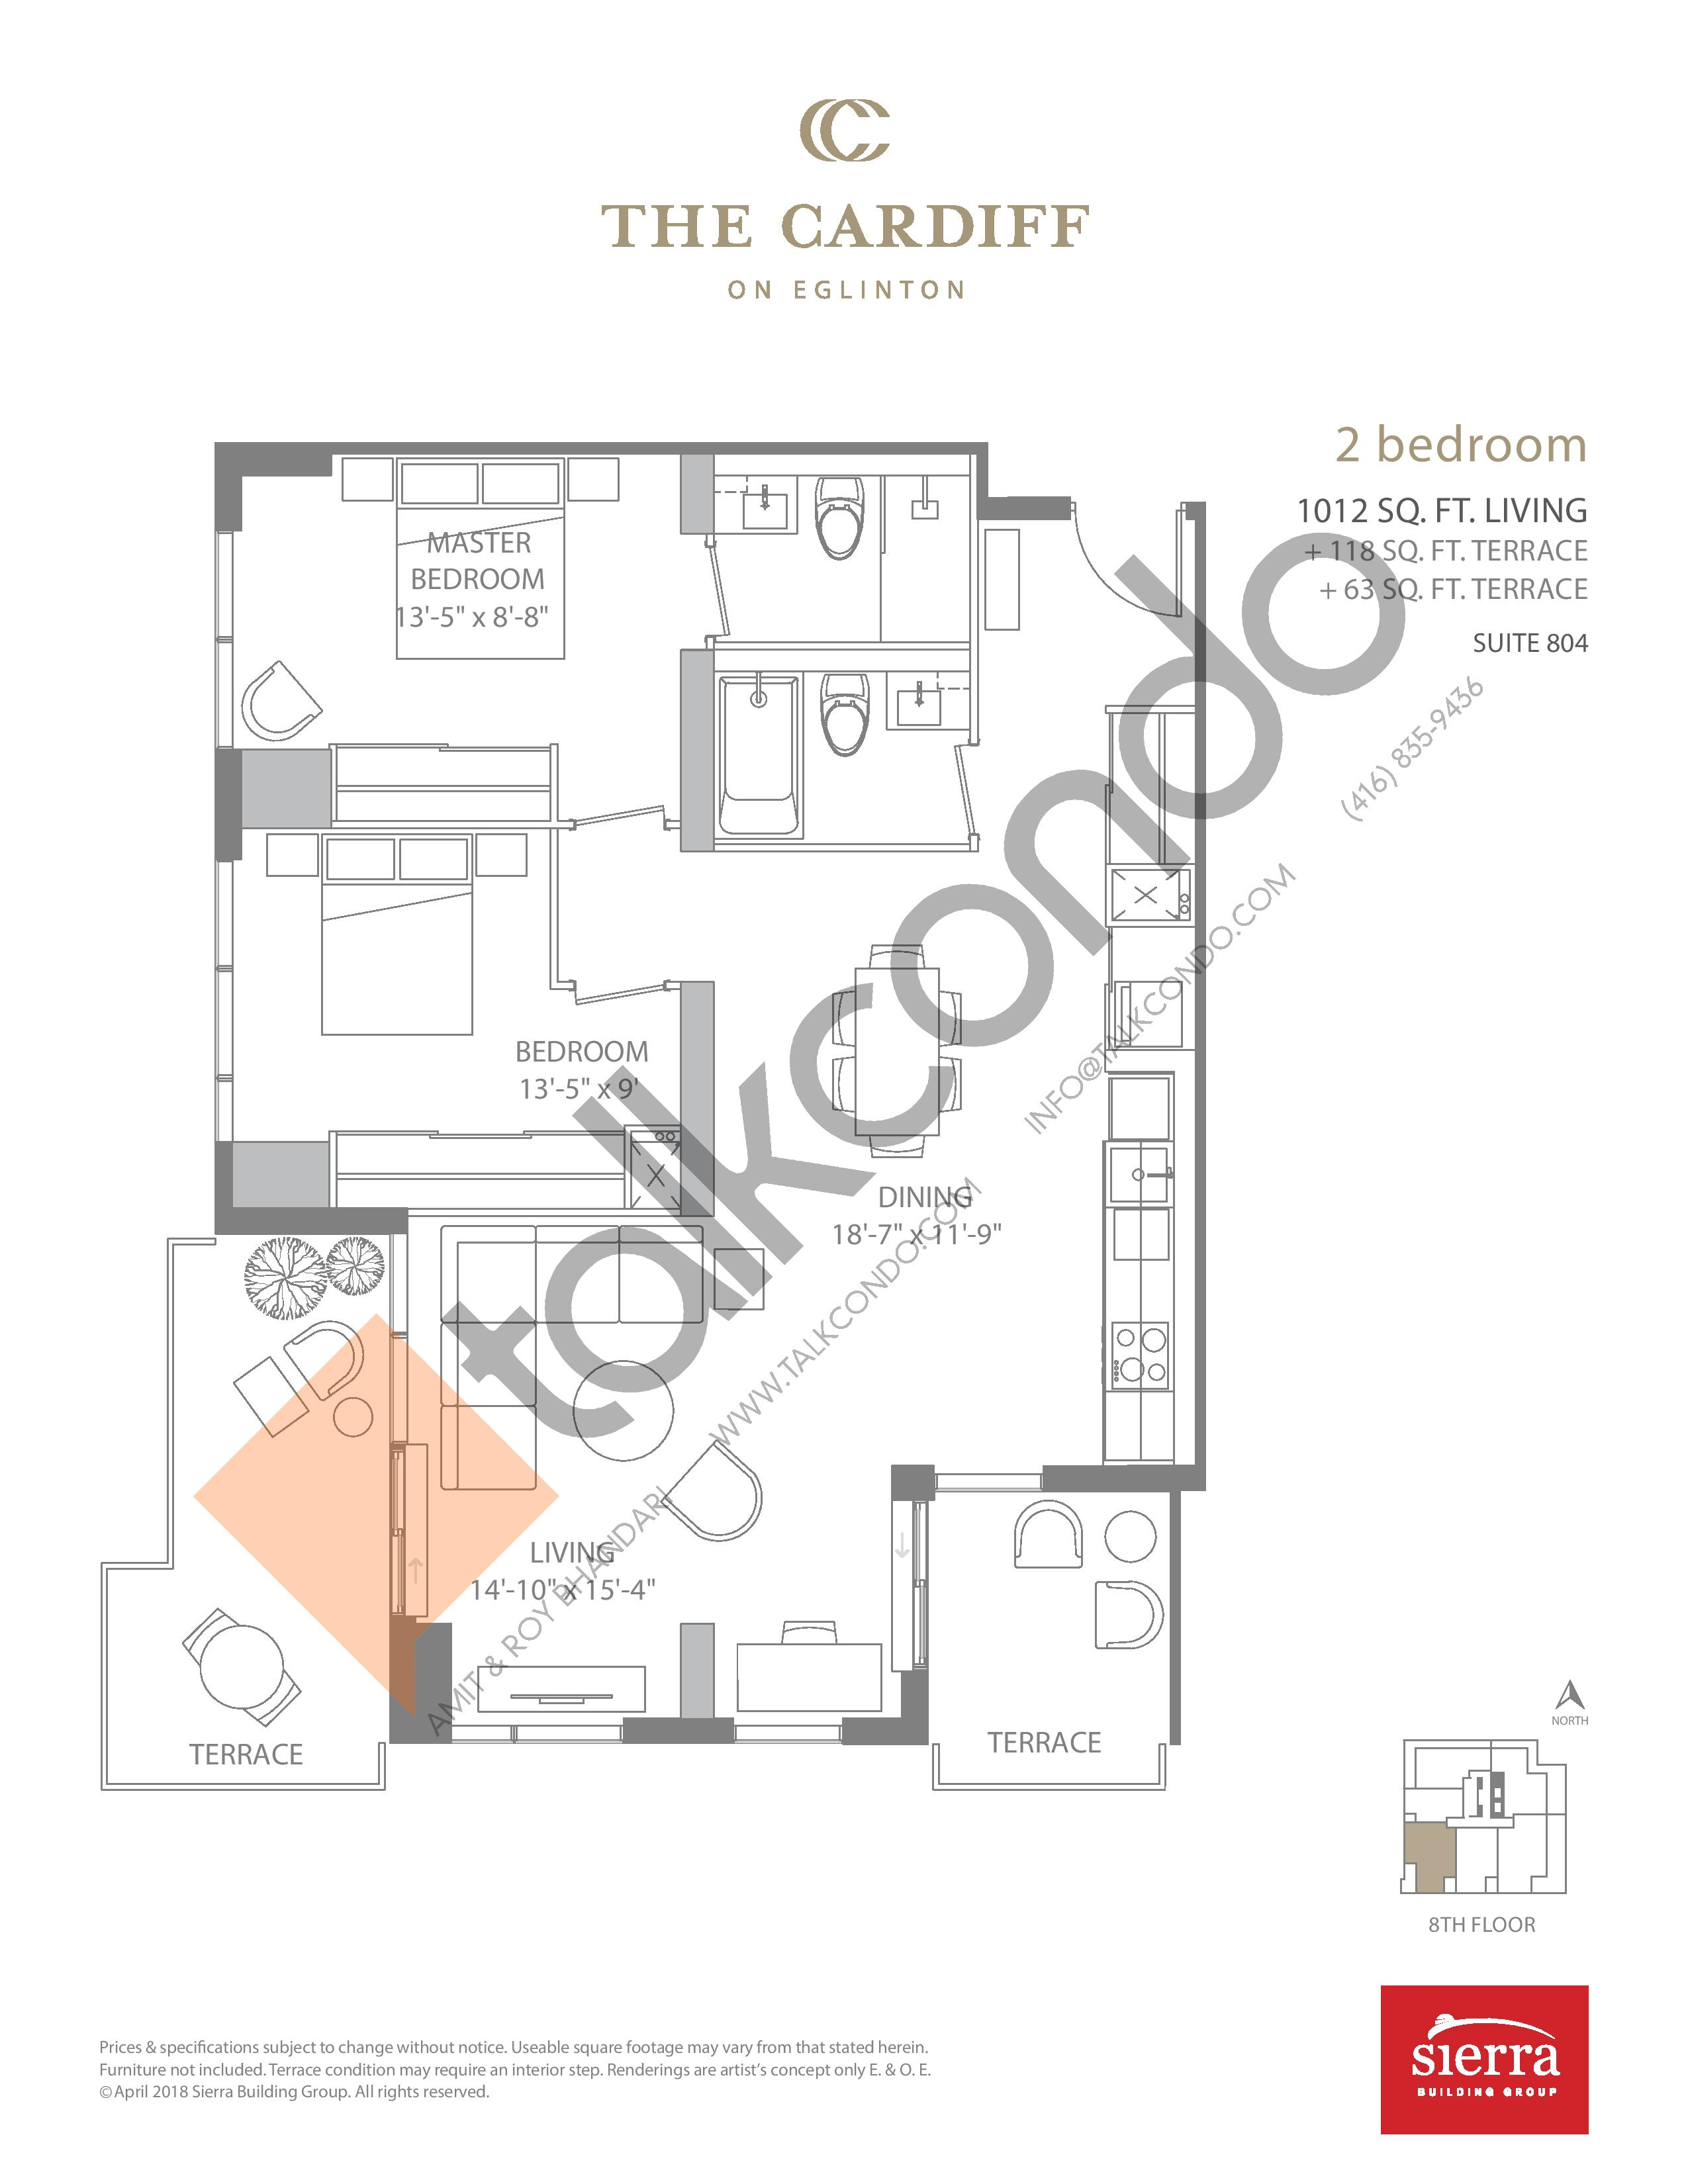 Suite 804 Floor Plan at The Cardiff Condos on Eglinton - 1012 sq.ft